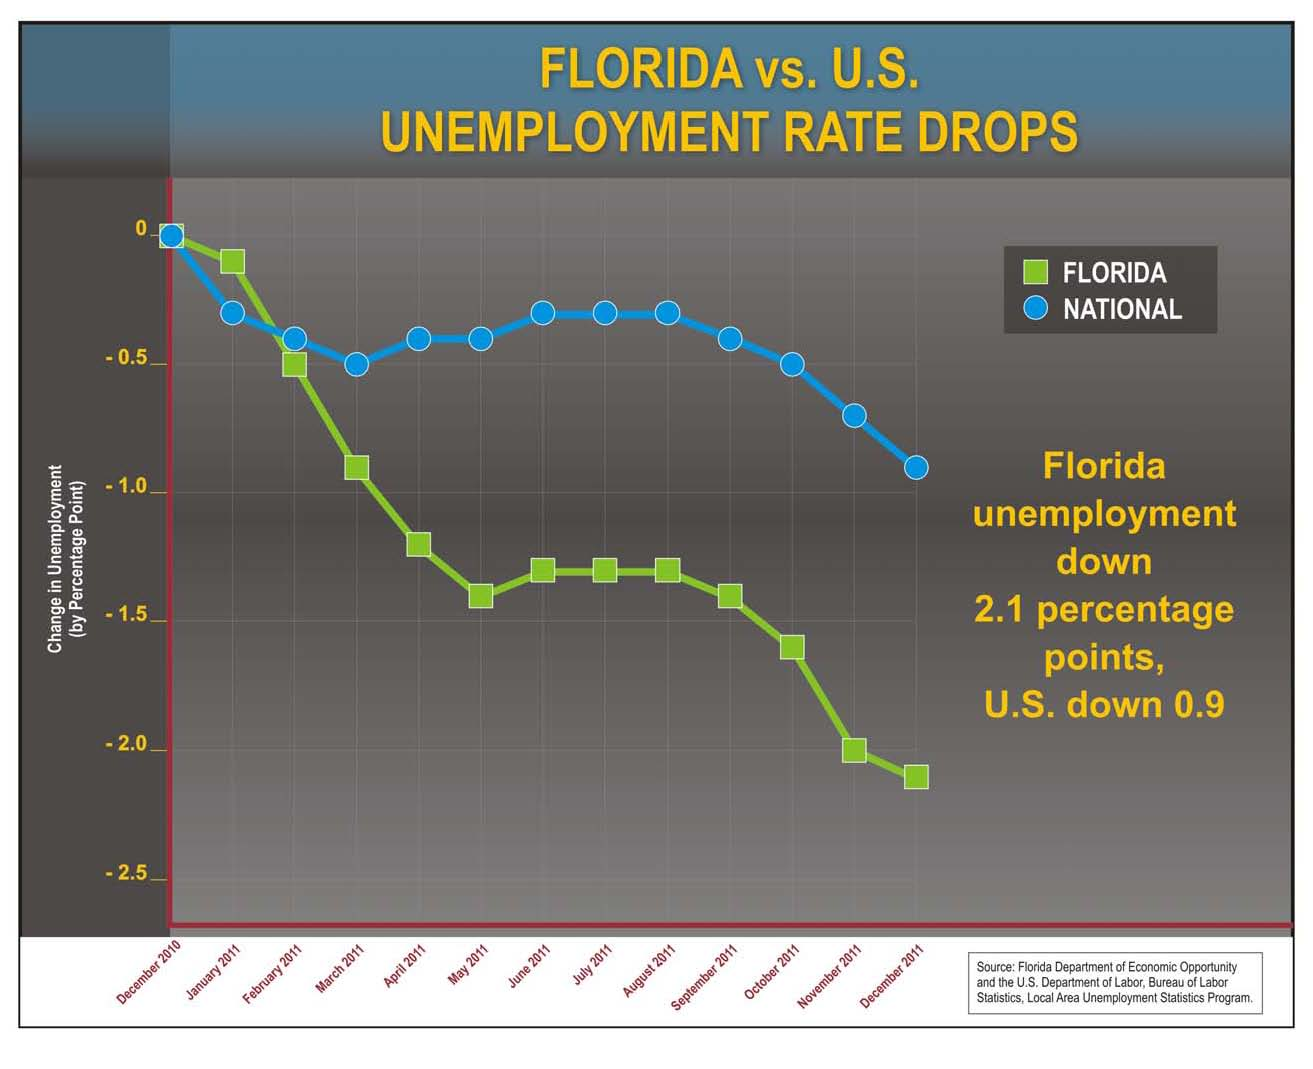 ... Florida businesses have created 141,500 private-sector jobs with an